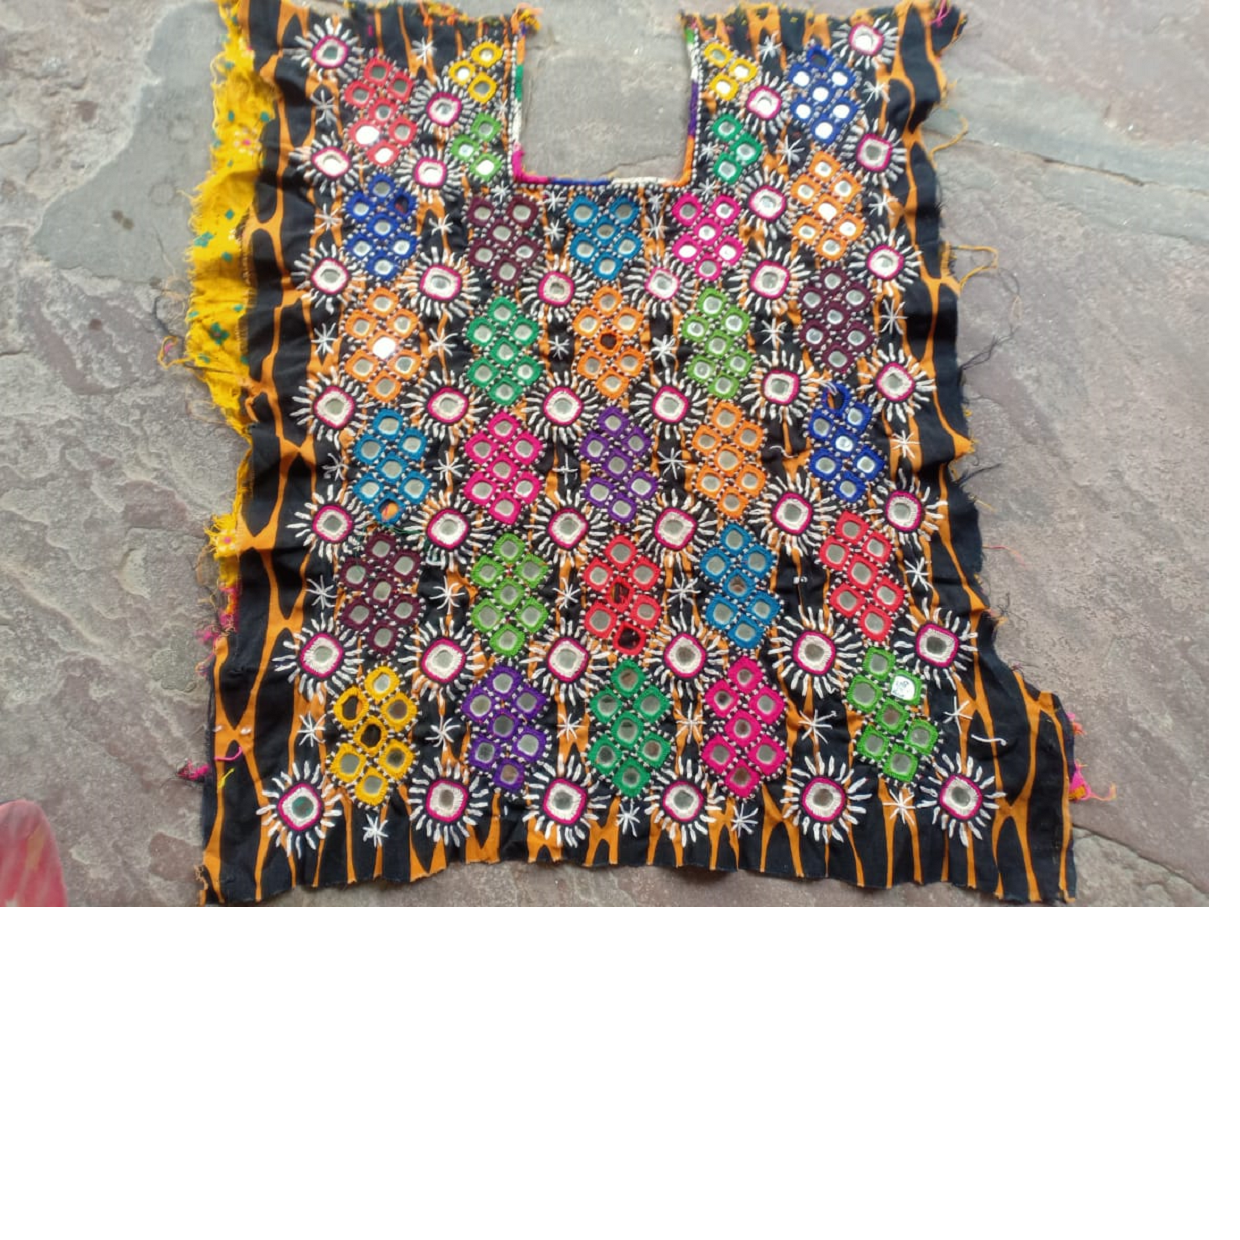 custom made hand embroidered mirror work tribal textiles available in a huge assortment of colors